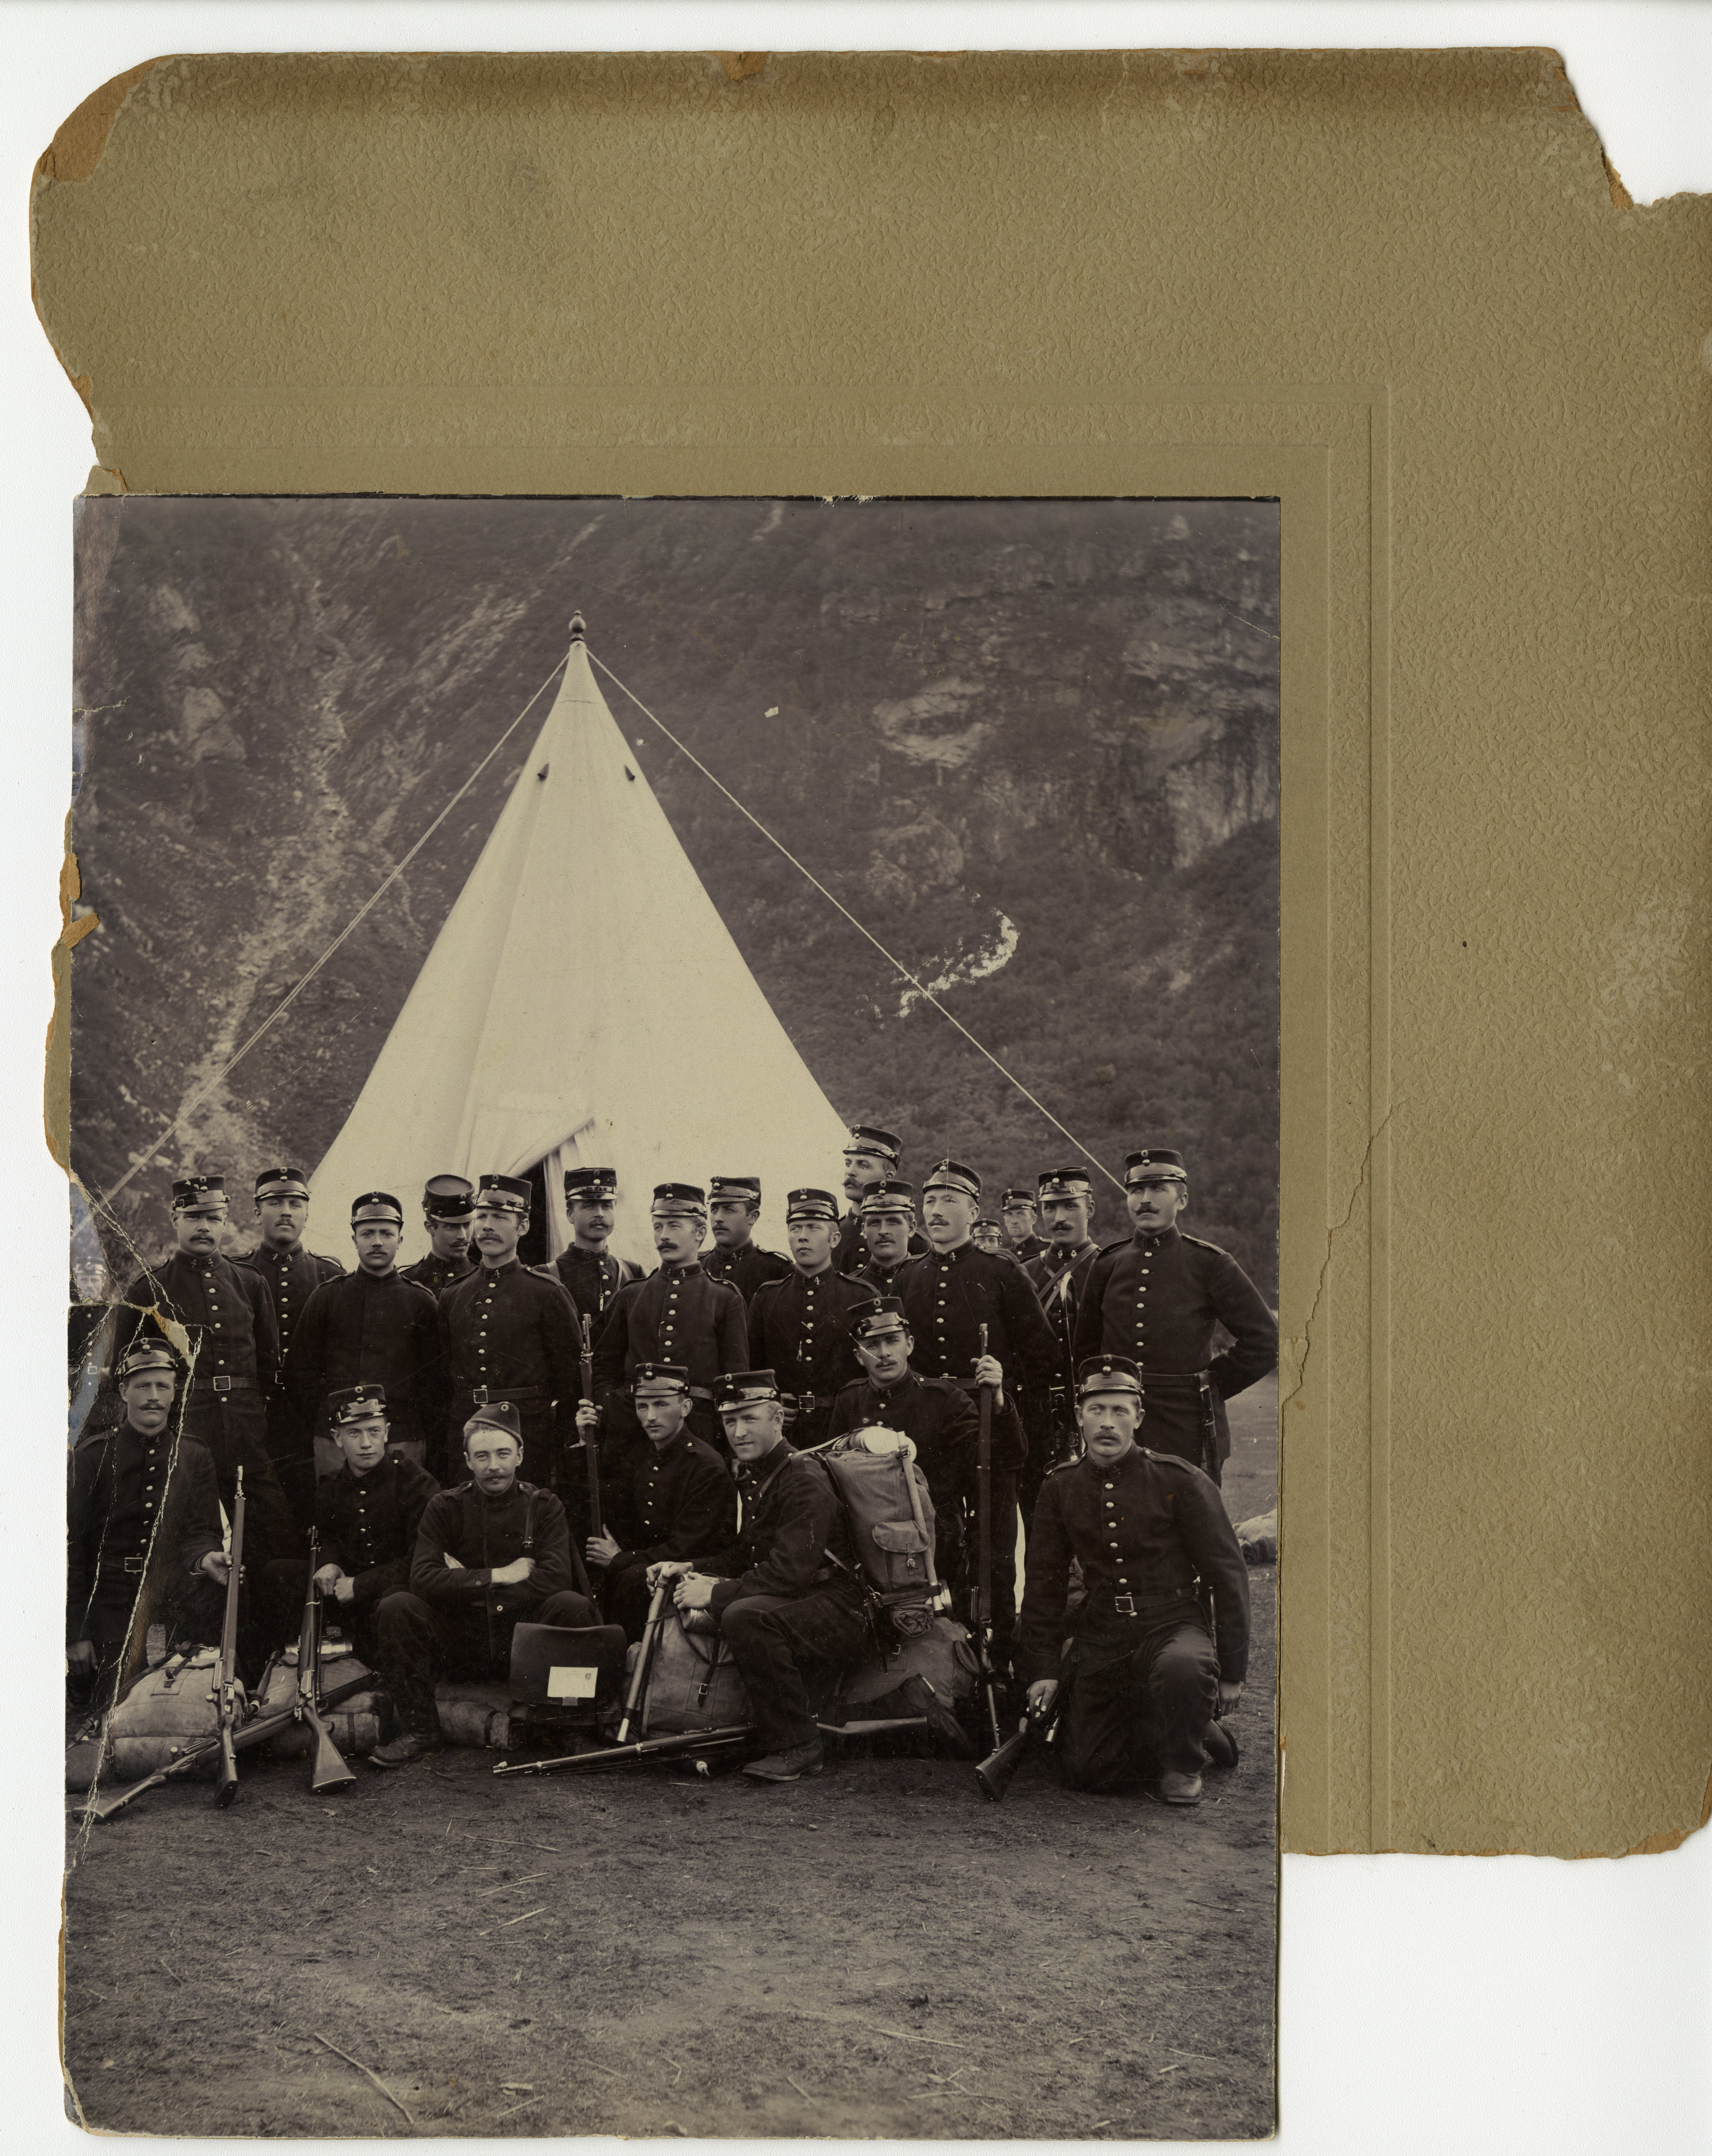 Group of men in uniform pose for a photo.